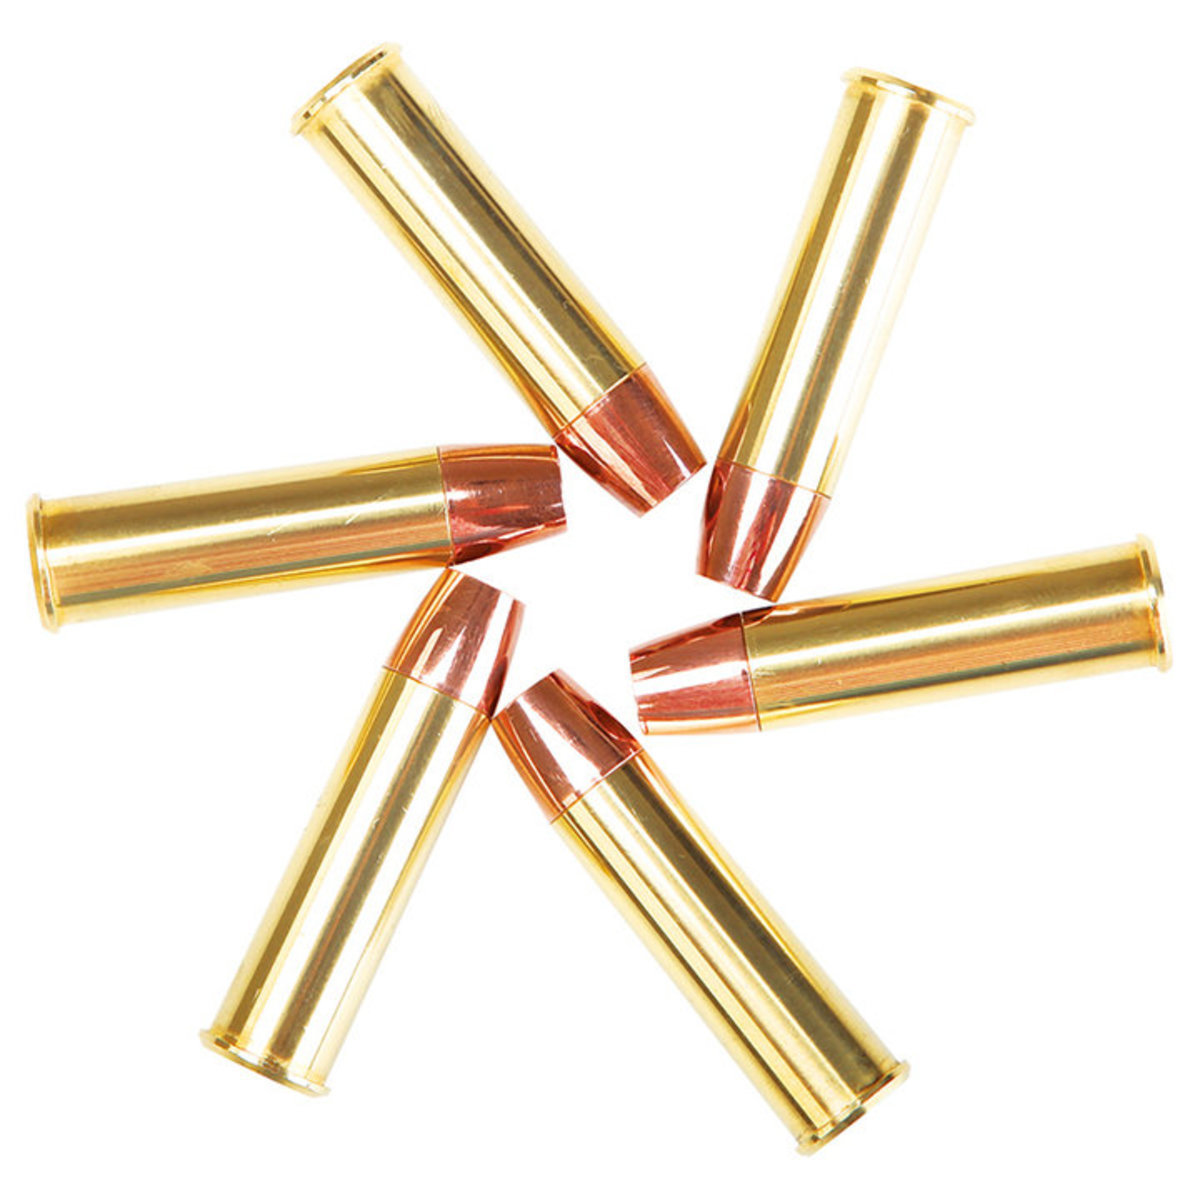 View larger image of Valken Spare Brass Revolver Shells - 6 Pack (Copper)